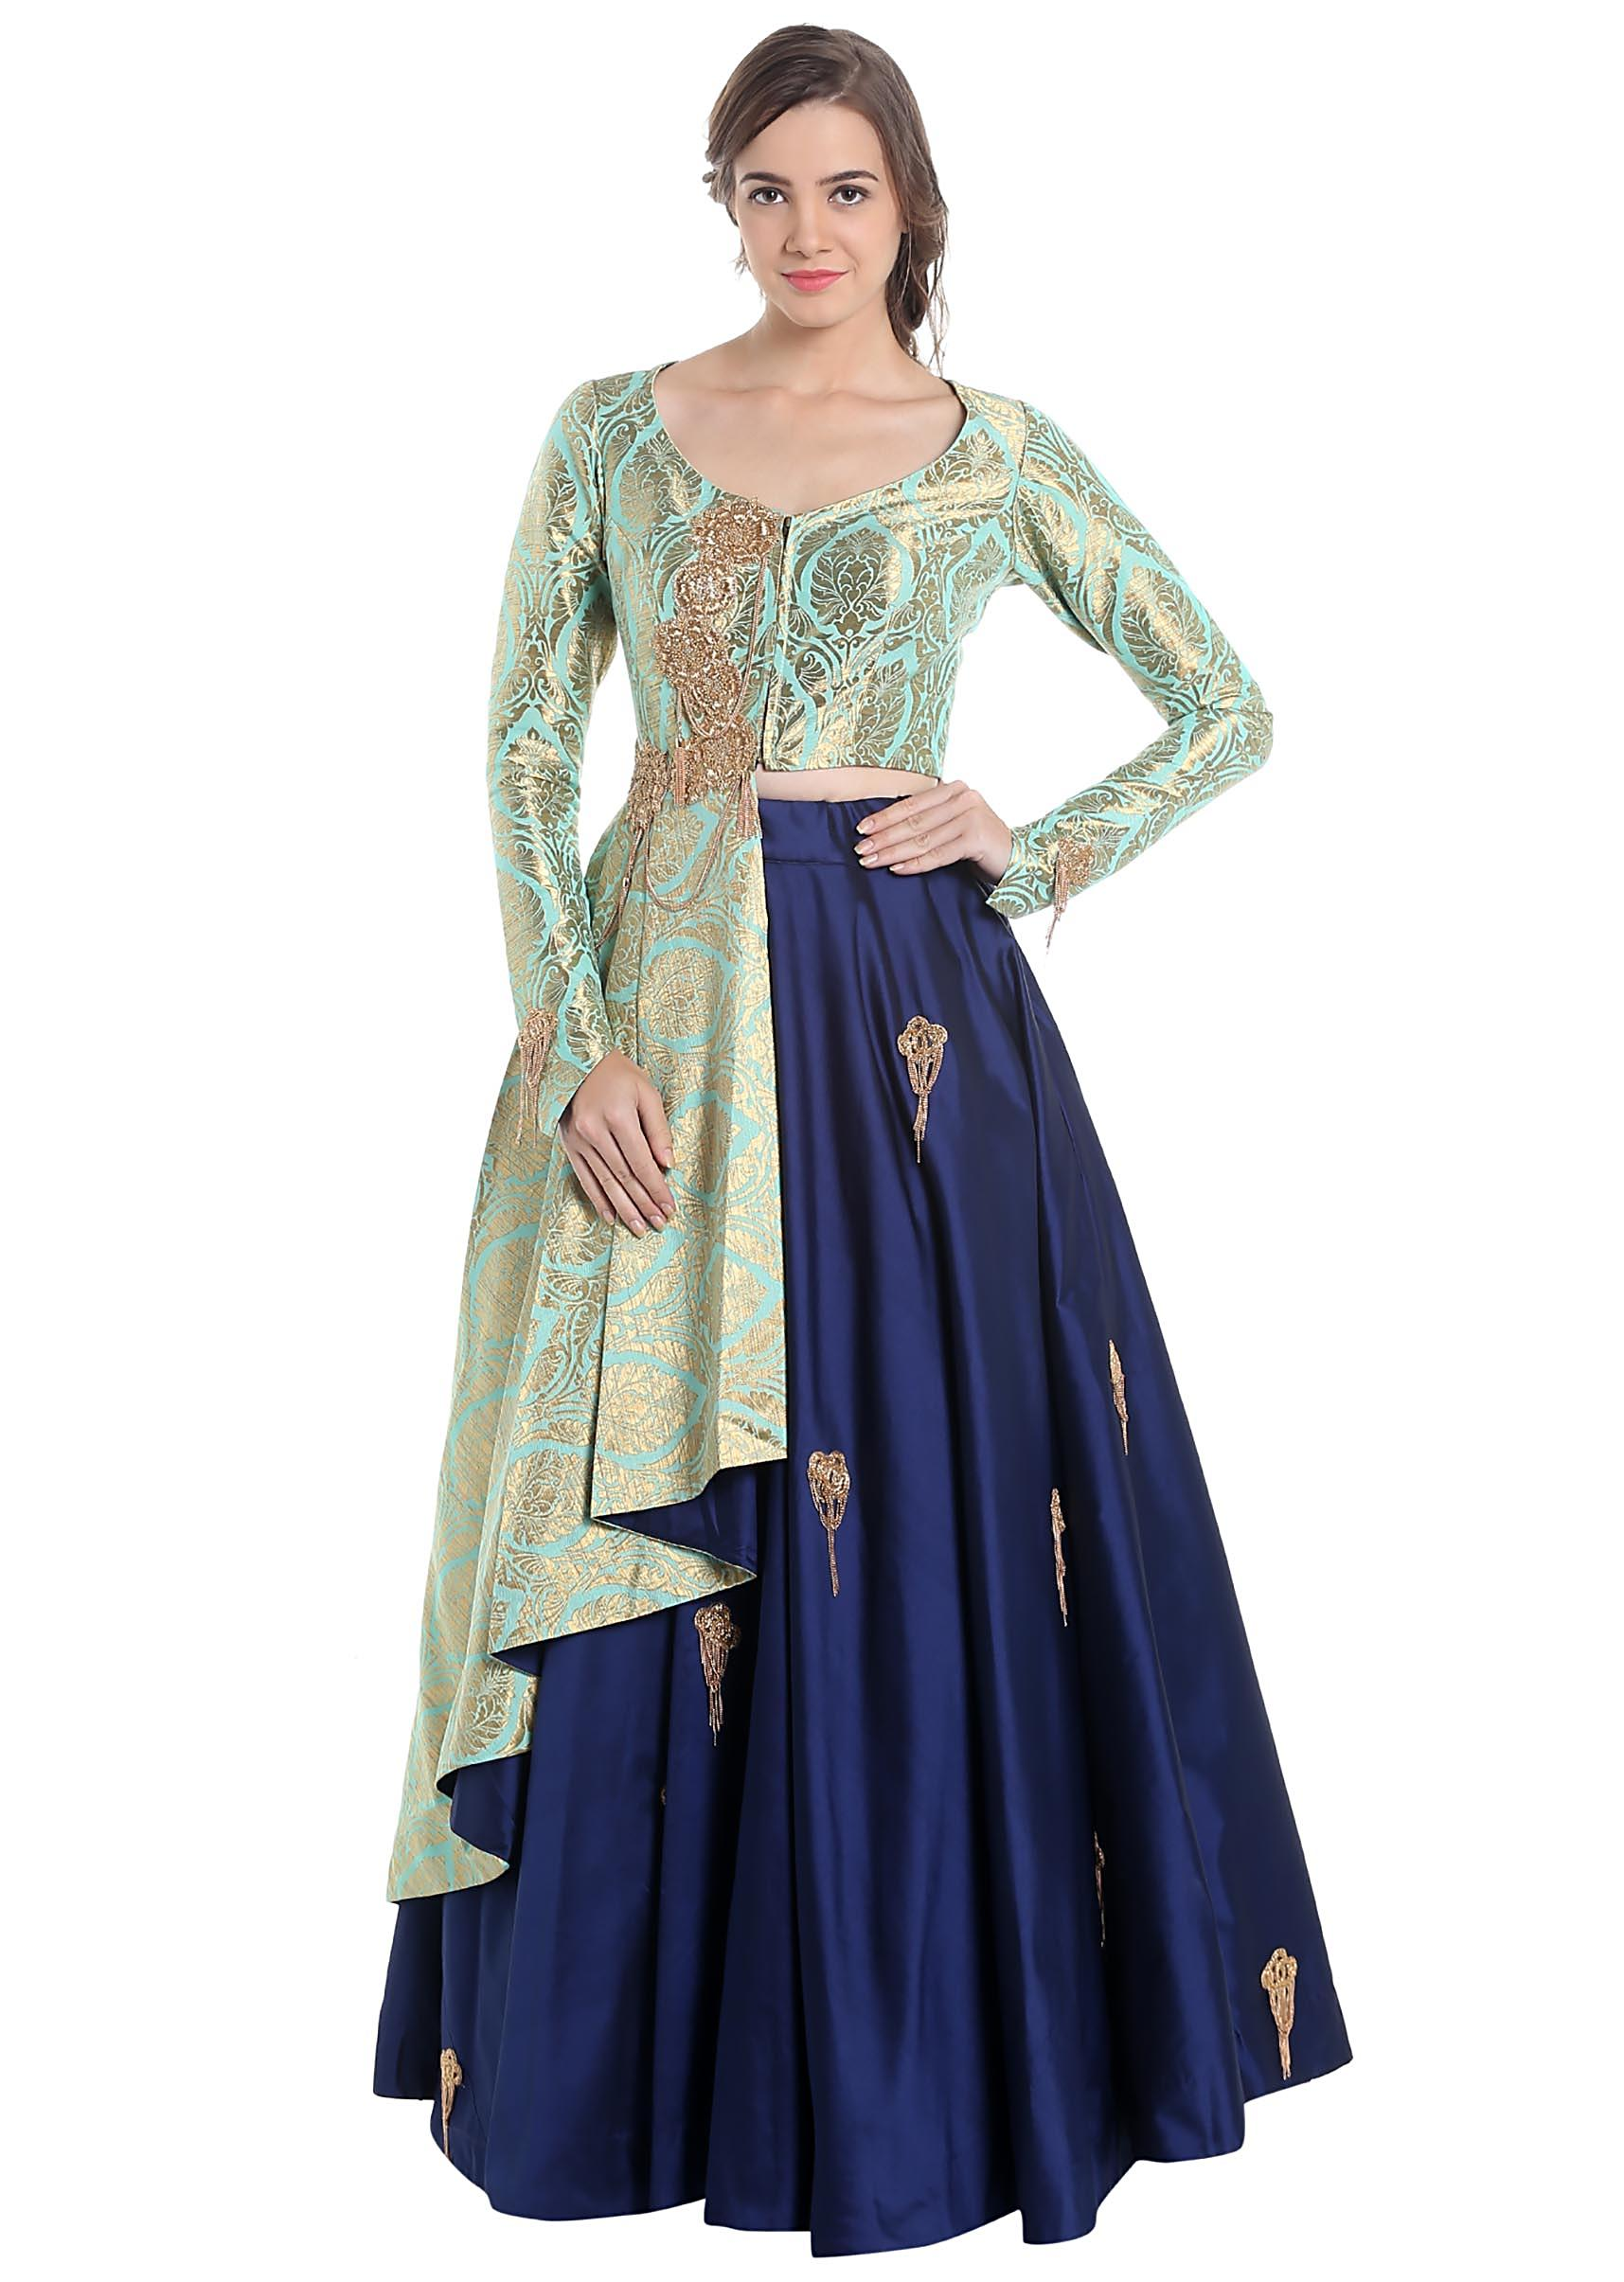 2f9887a340 Turquoise and navy blue lehenga choli with brocade work only on KalkiMore  Detail